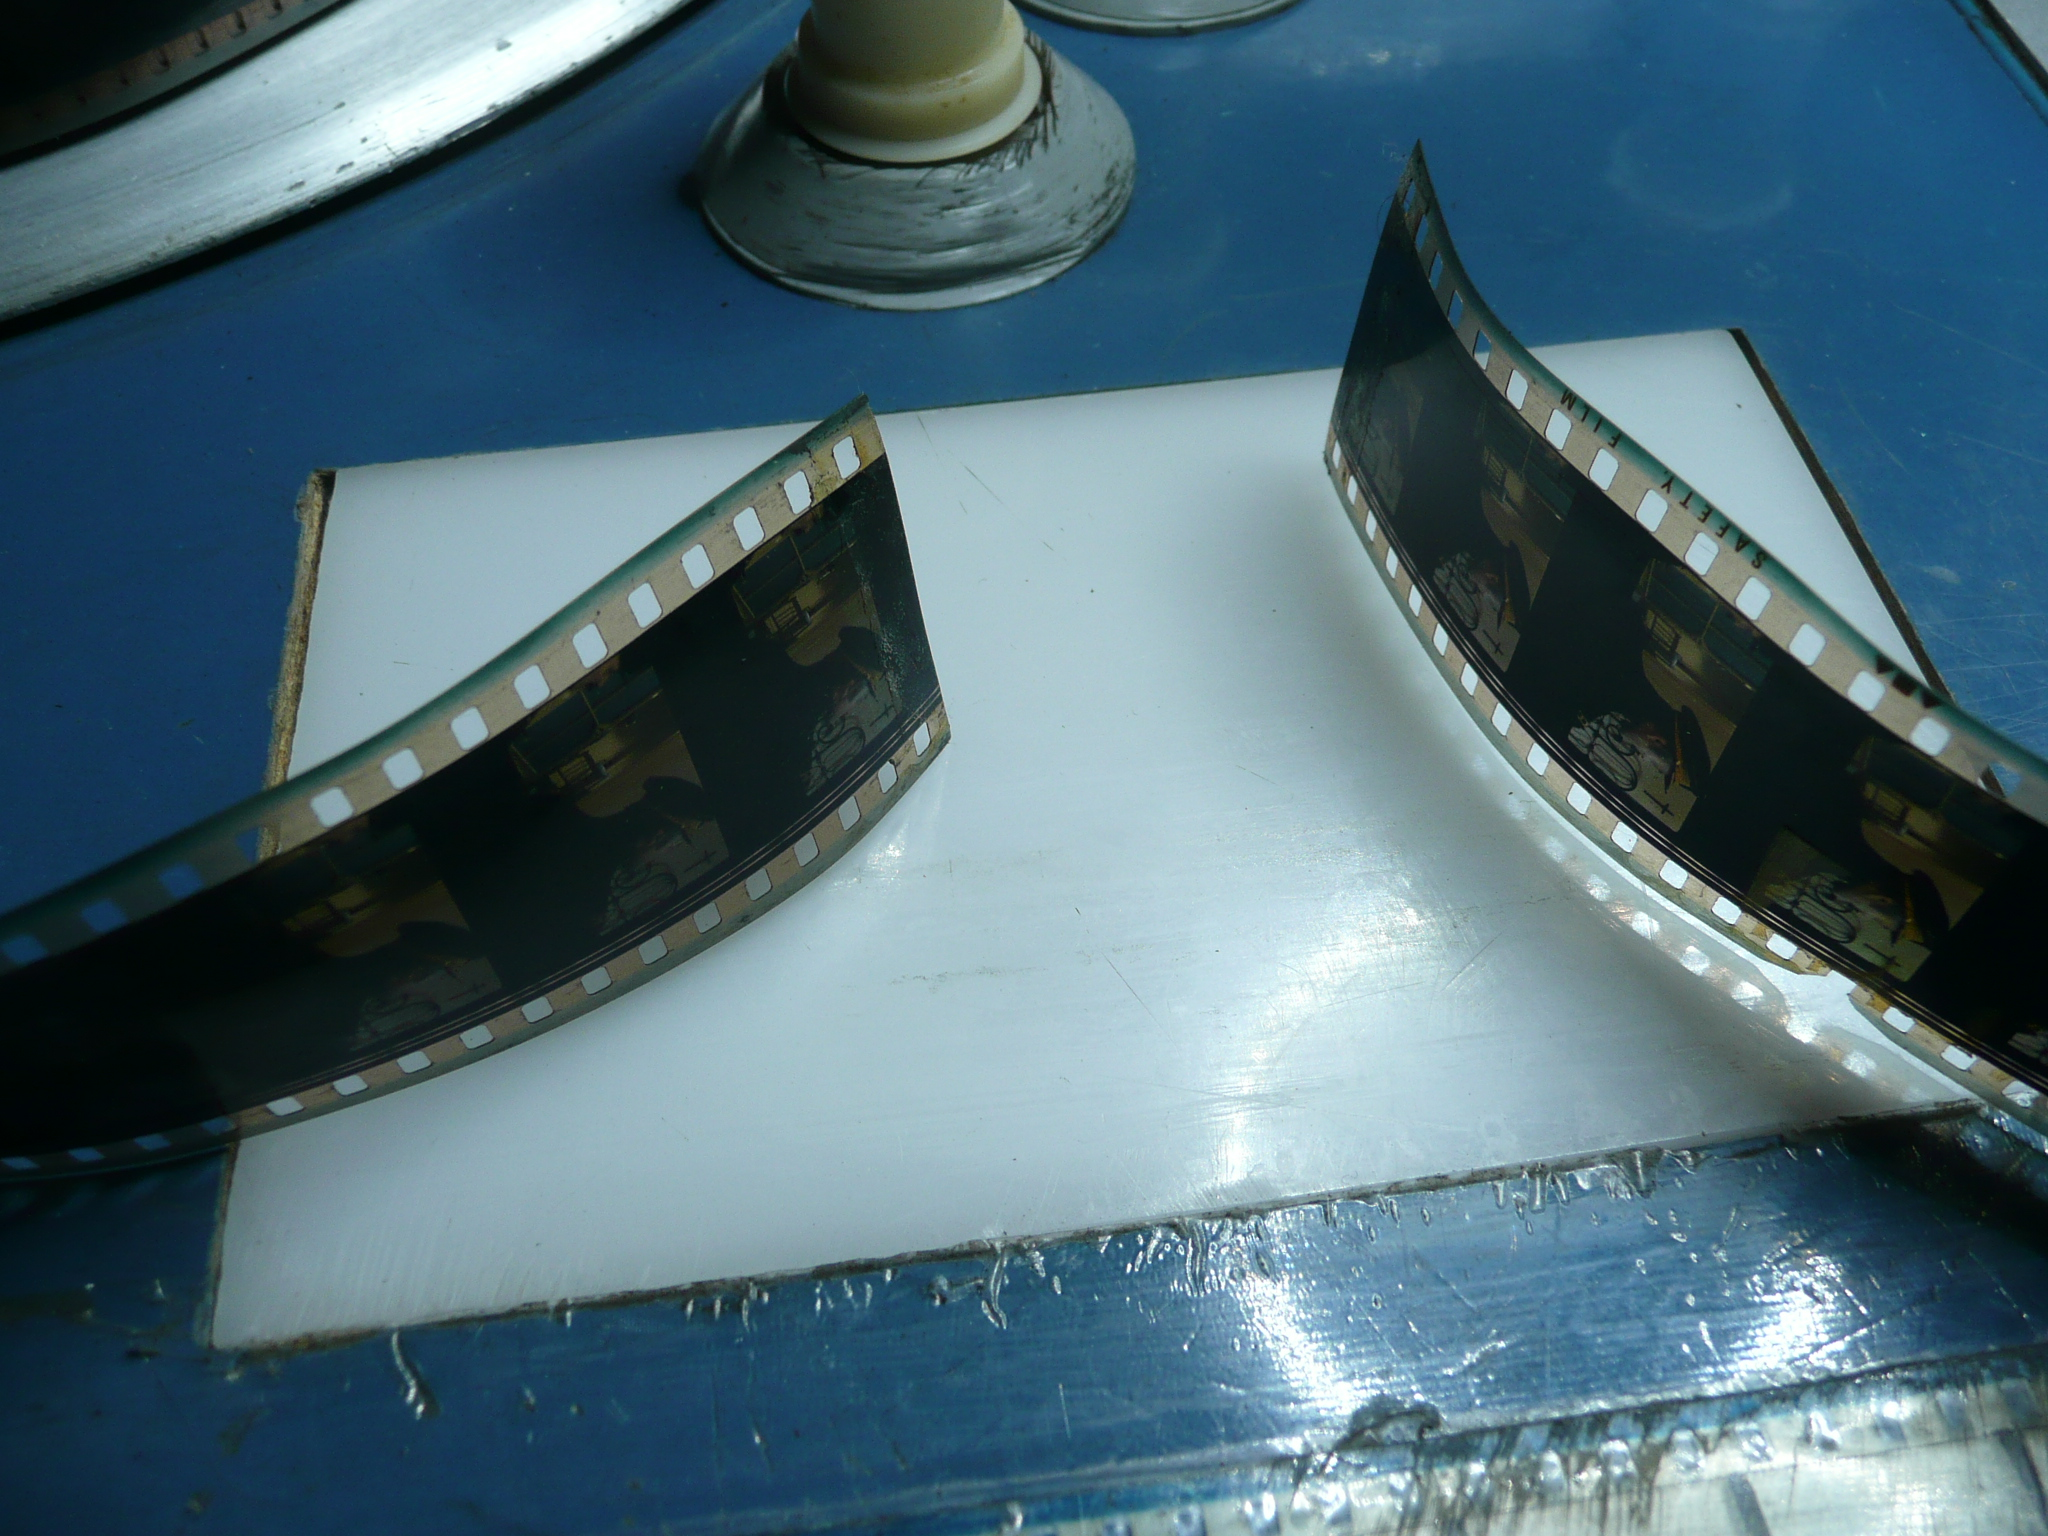 Splices and perforations repair